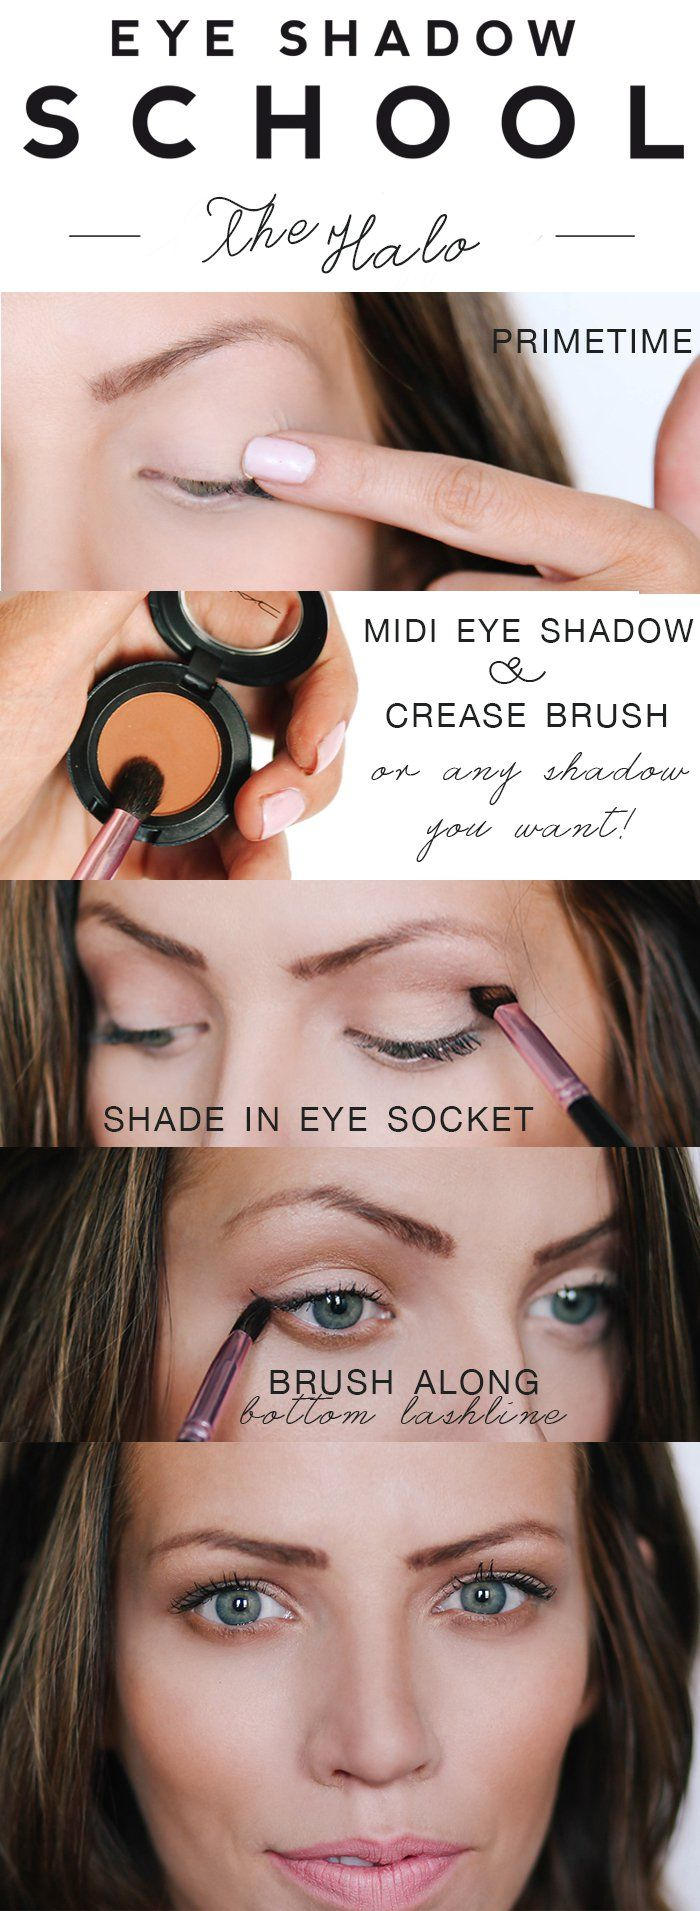 Eyeshadow School: The Halo -  I like this because it is so simple to do if you are in a hurry!!